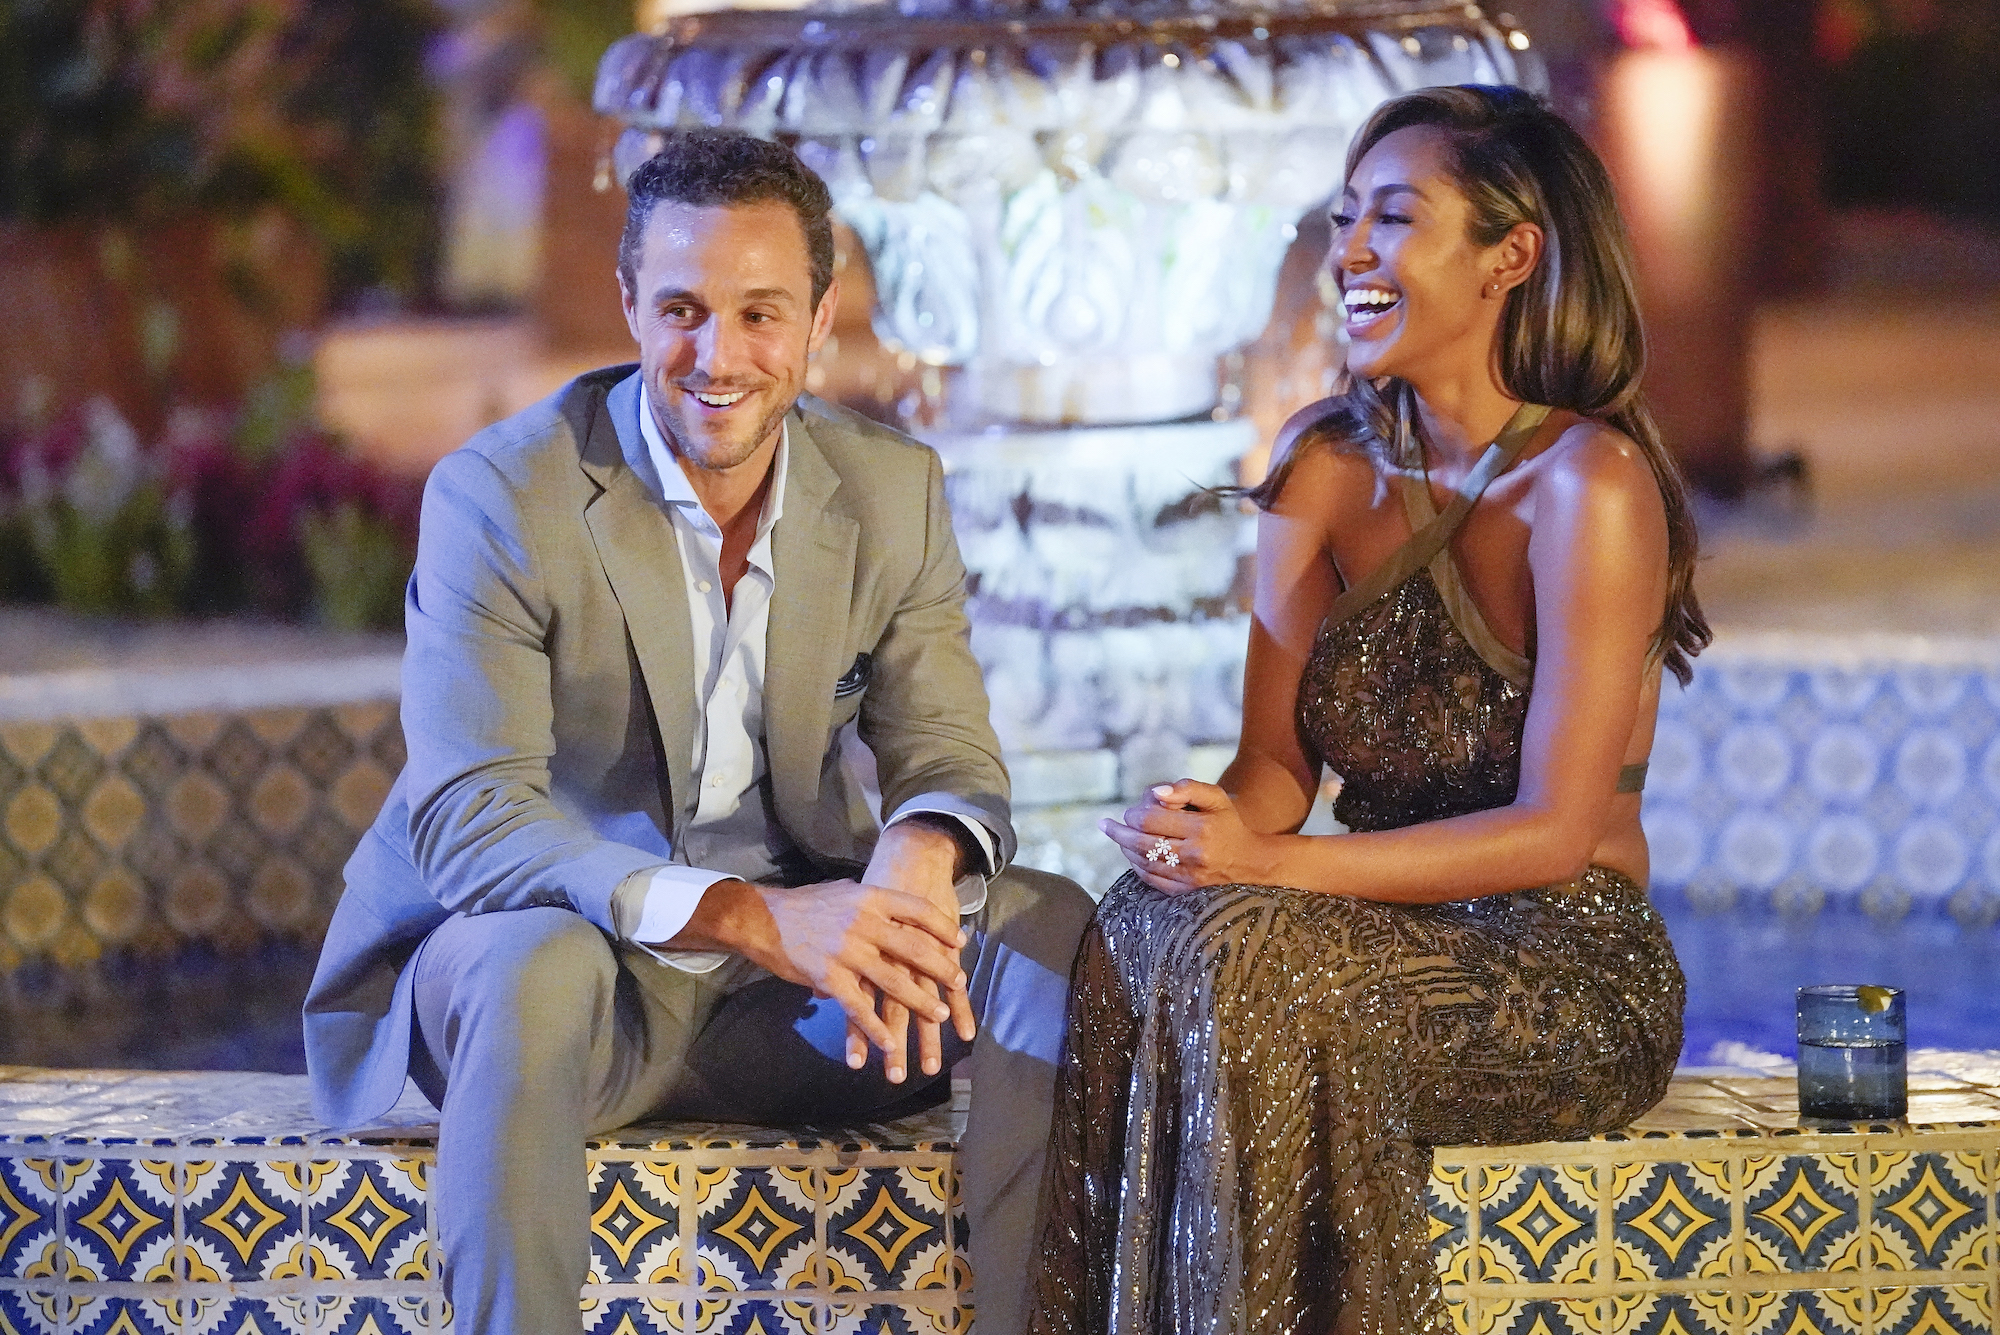 Tayshia Adams and Zac C. on her first night as the new Bachelorette on 'The BACHELORETTE.'